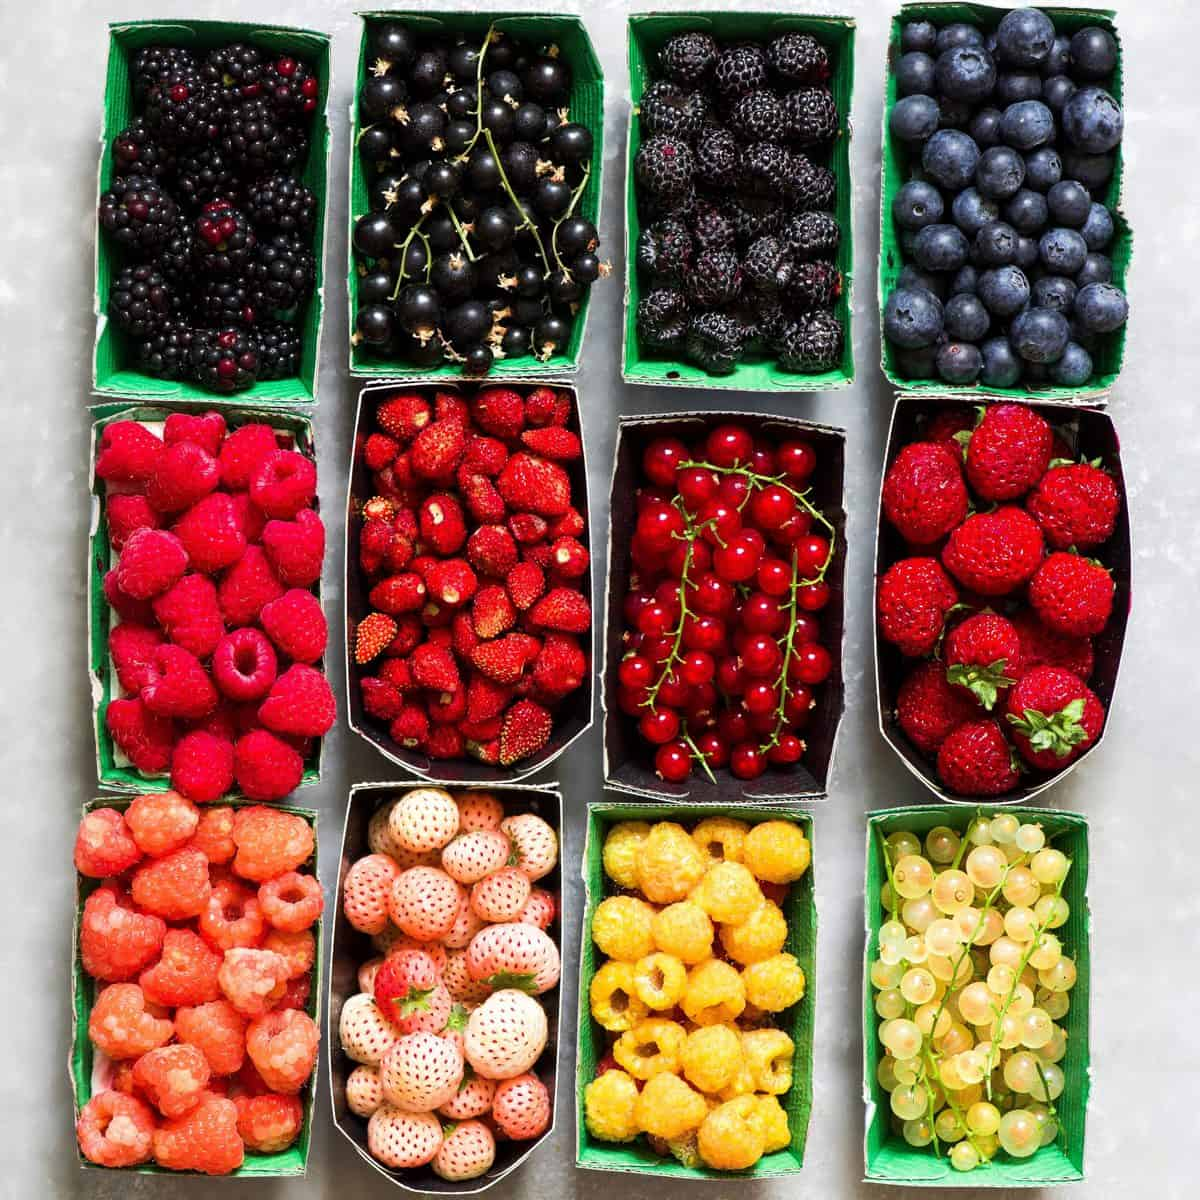 Different fresh berries types